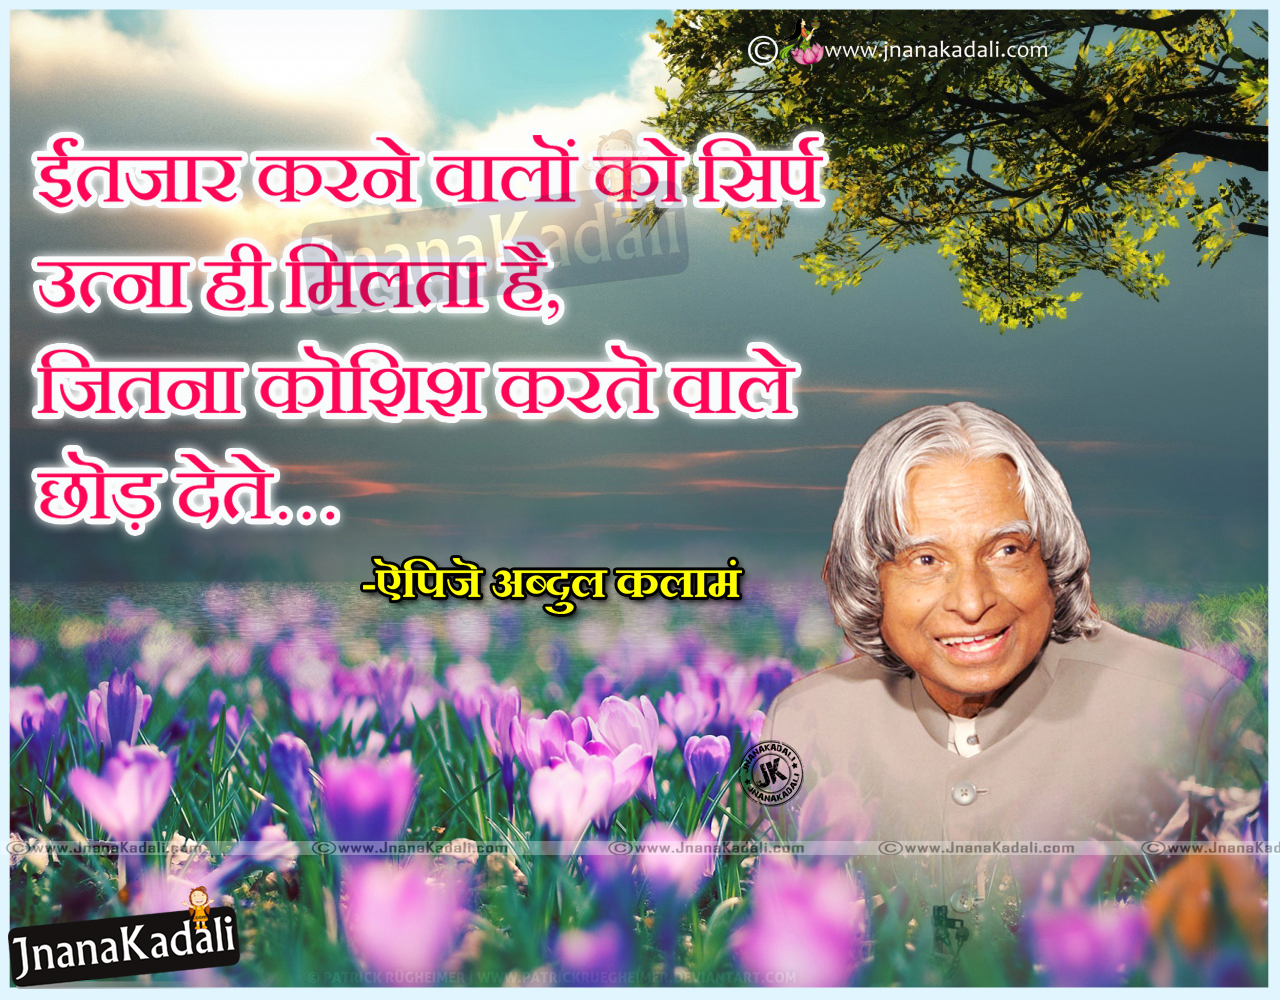 about abdul kalam in hindi language Free essays on about dr apj abdul kalam in hindi language get help with your writing 1 through 30.